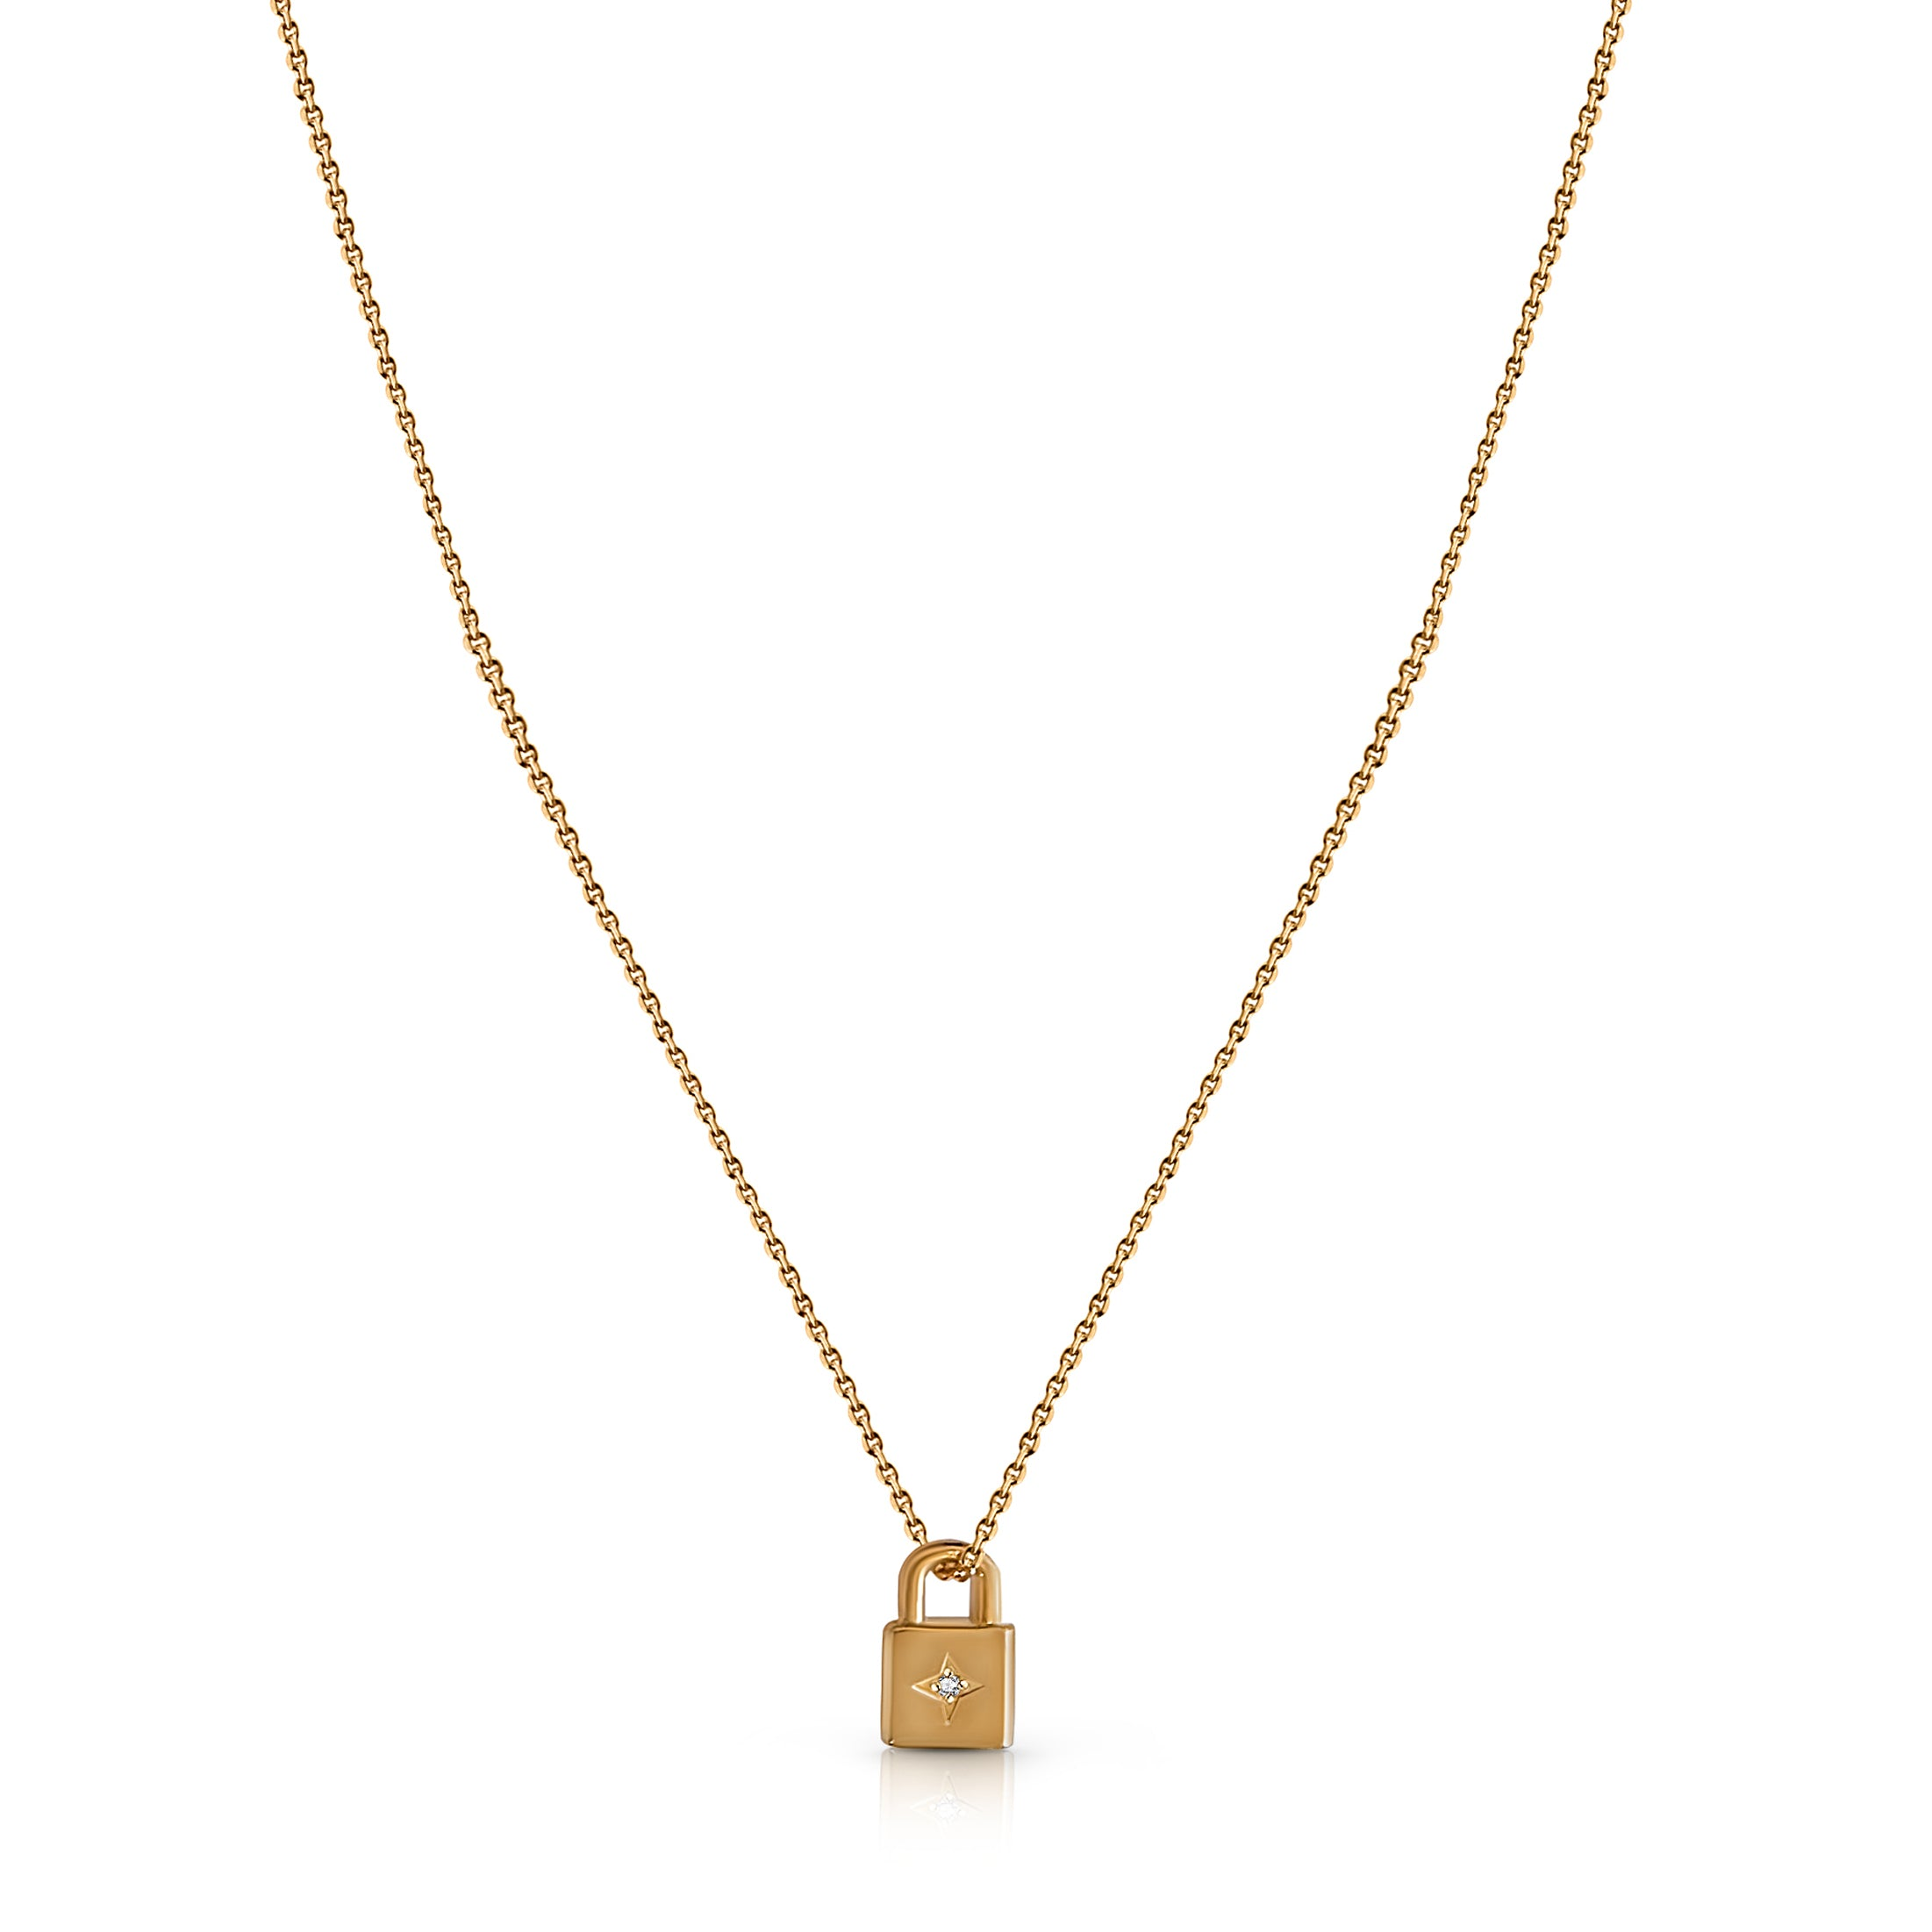 Lovers Lock, Padlock Necklace - Yellow Gold